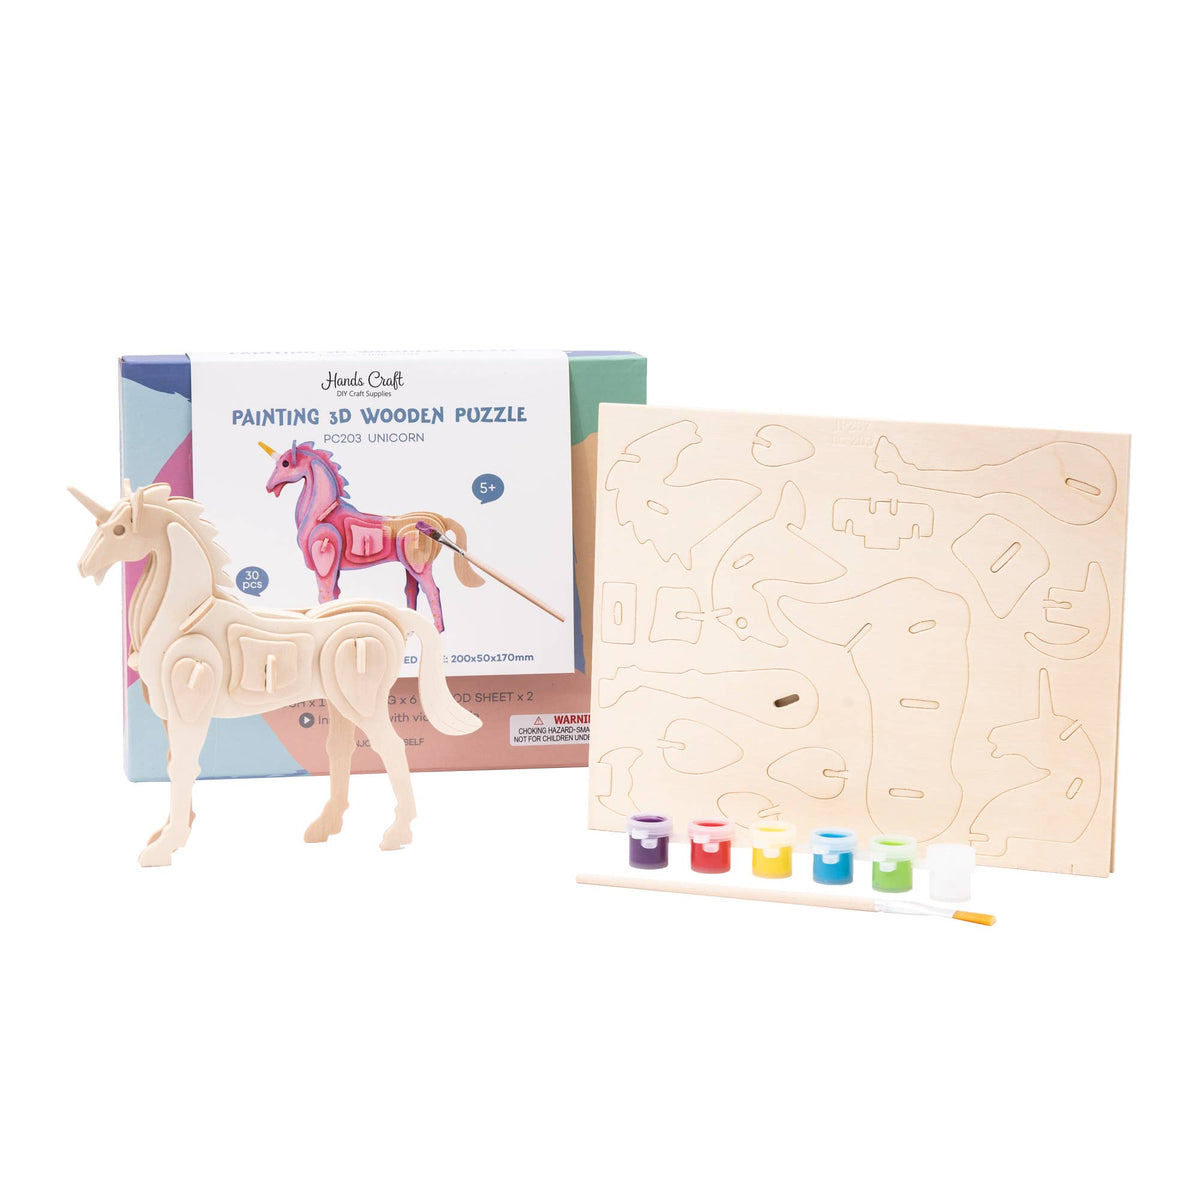 HC203, 3D Wooden Puzzle Paint Kit: Unicorn